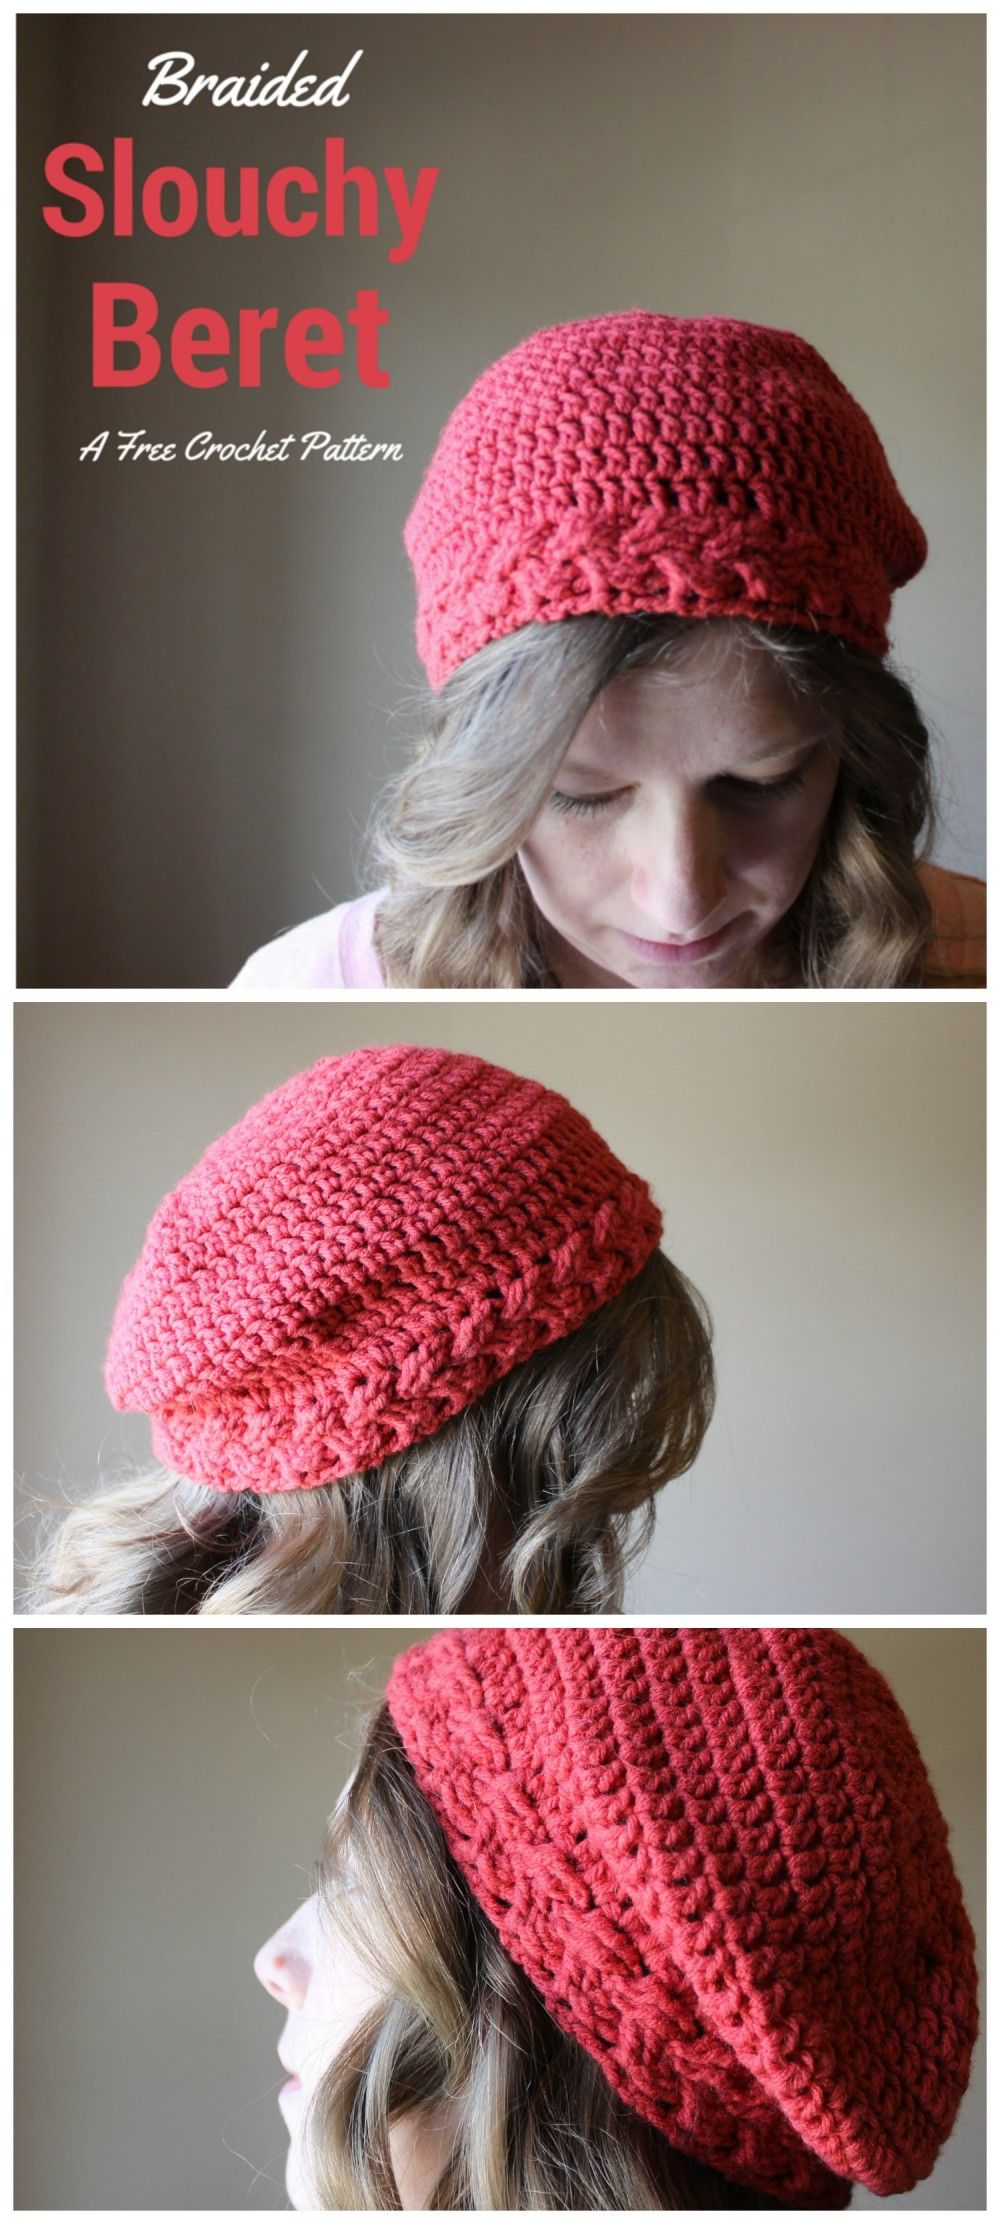 Braided Slouchy Hat - Free crochet pattern. | Crochet | Pinterest ...